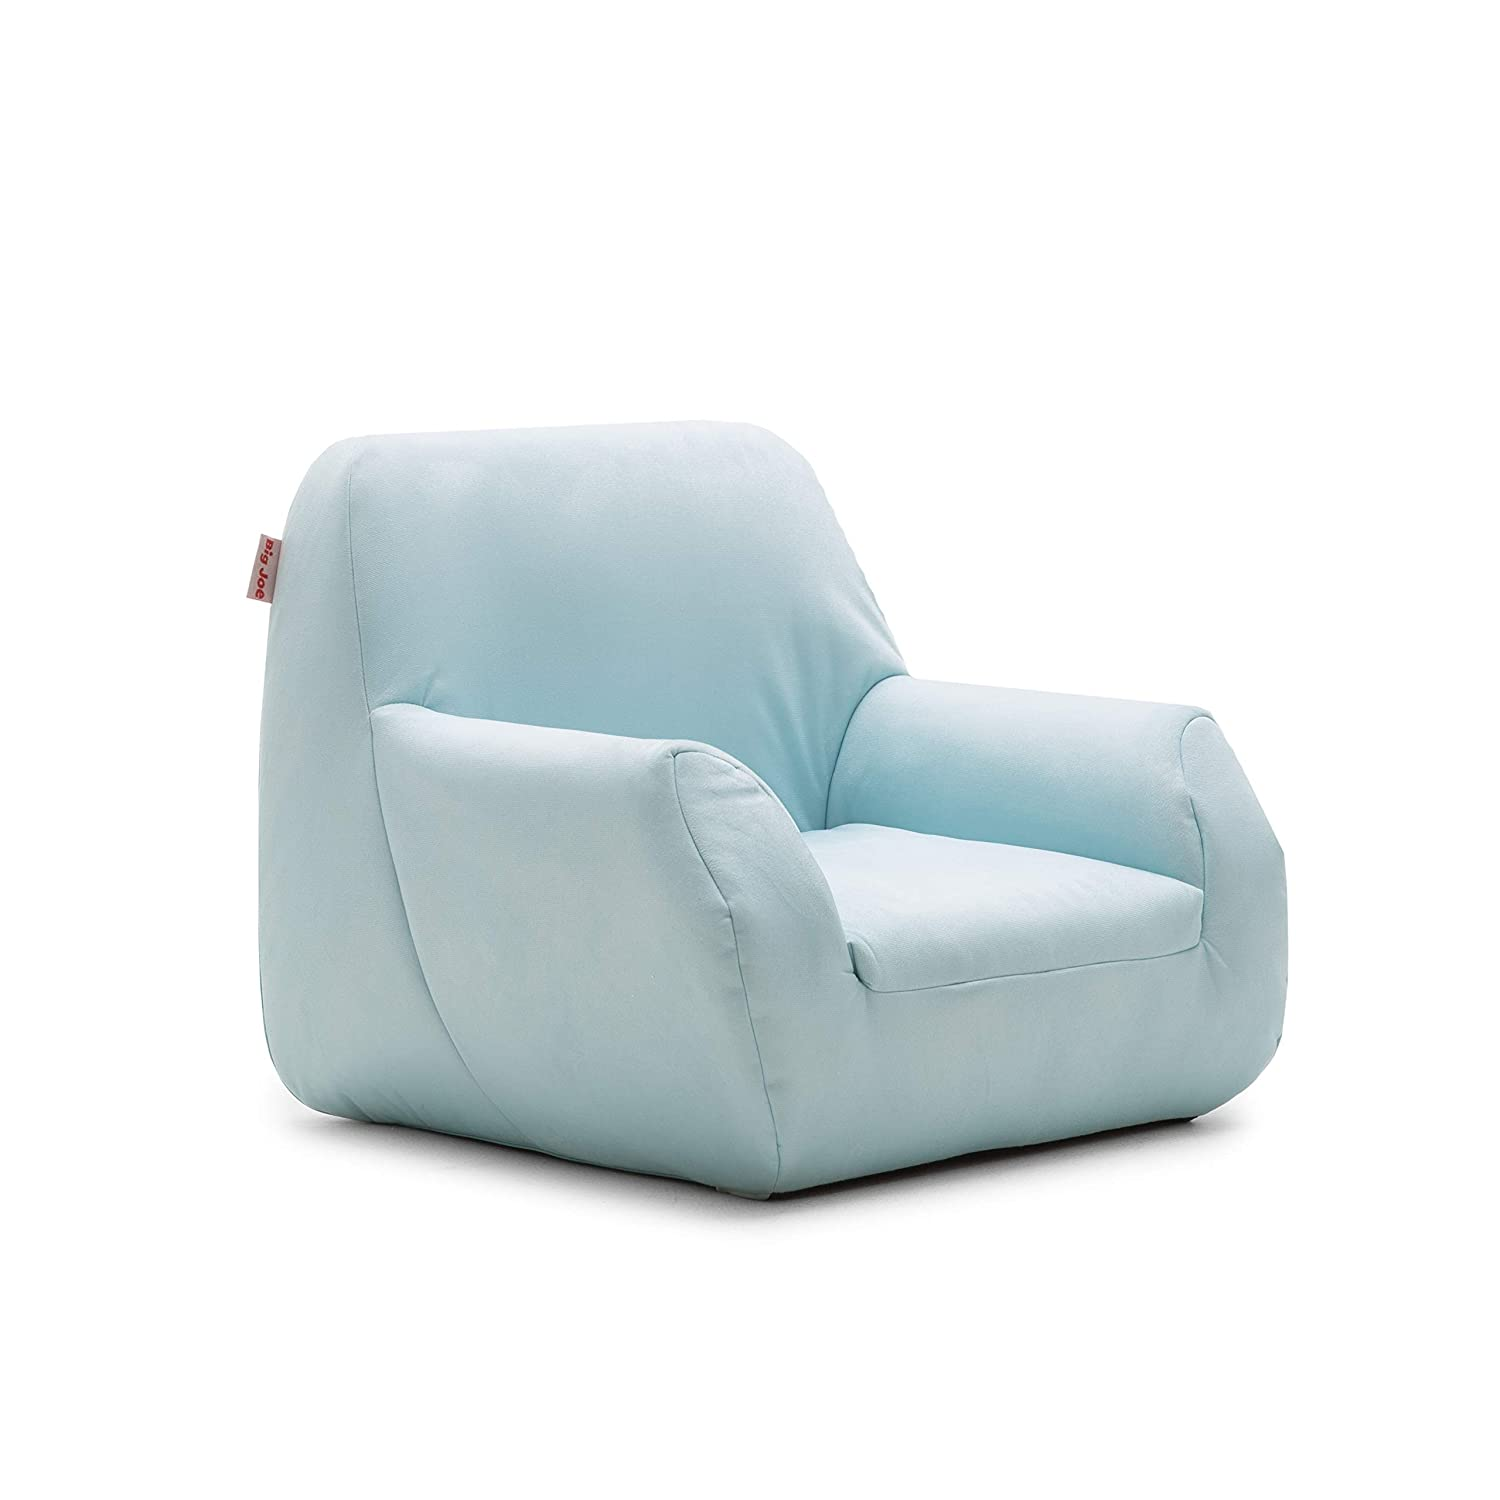 Big Joe 1596661 Mid Mod, Lenox Icecap Blue Kid's Chair,